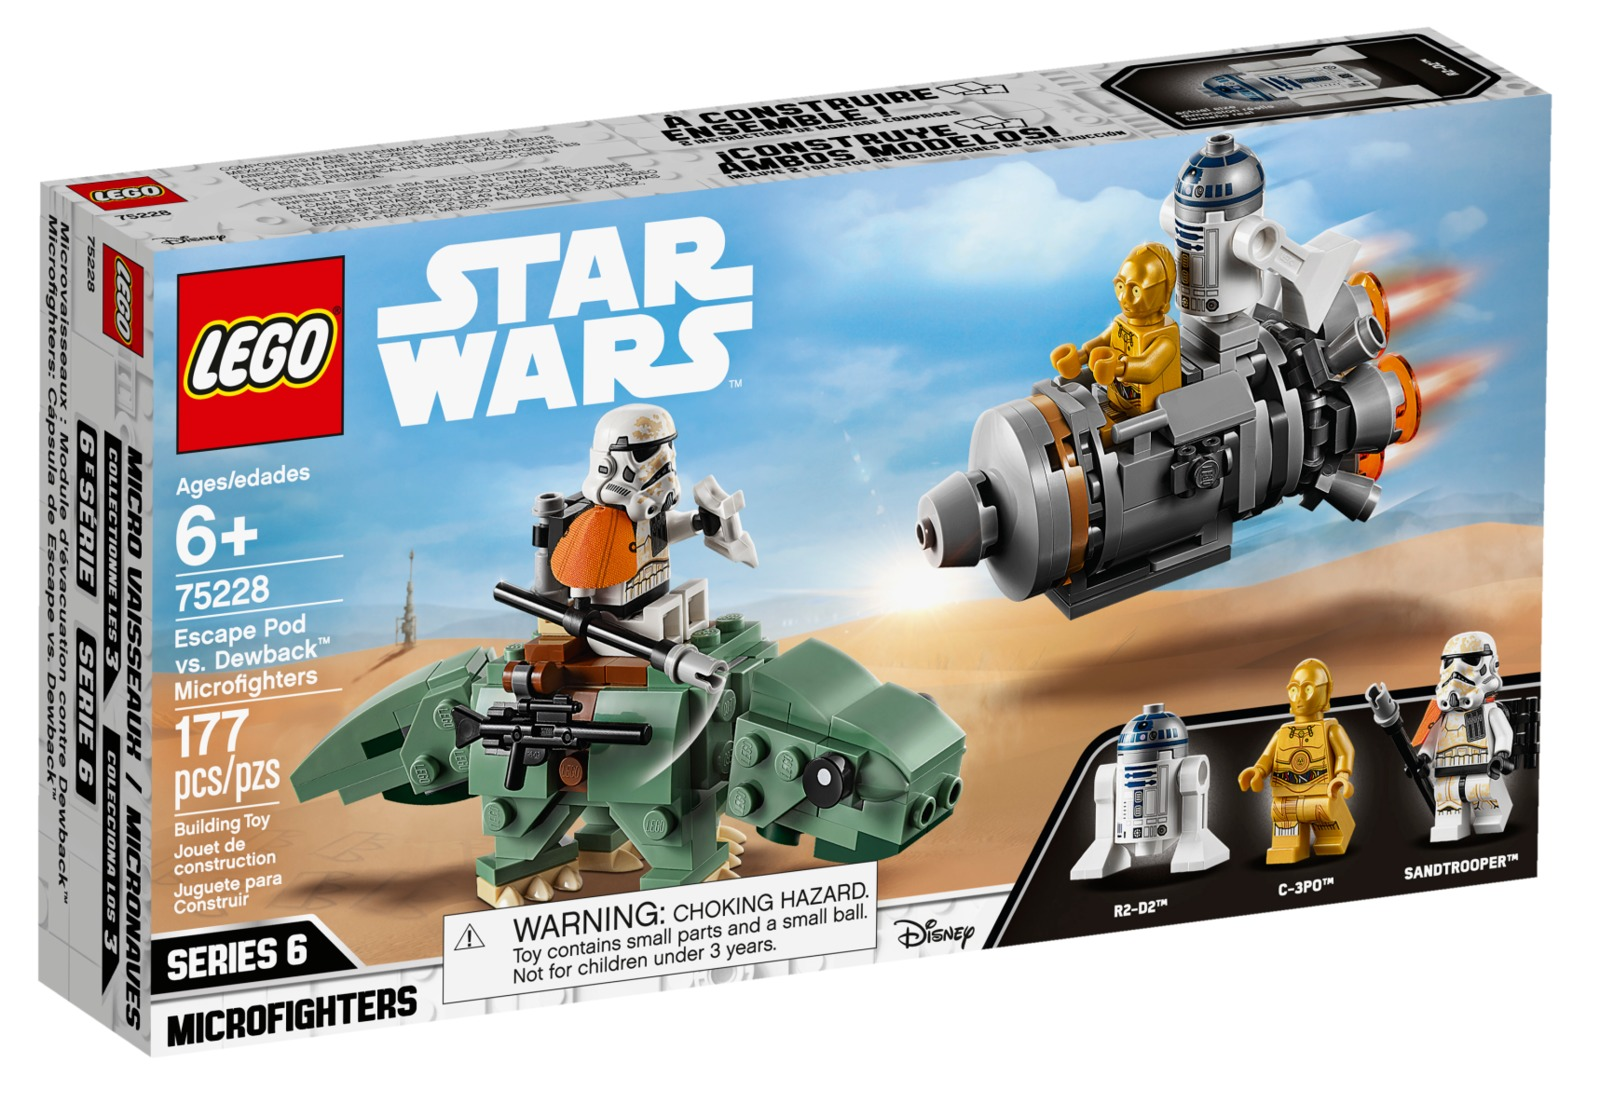 LEGO Star Wars: Escape Pod vs. Dewback - Microfighters (75228) image